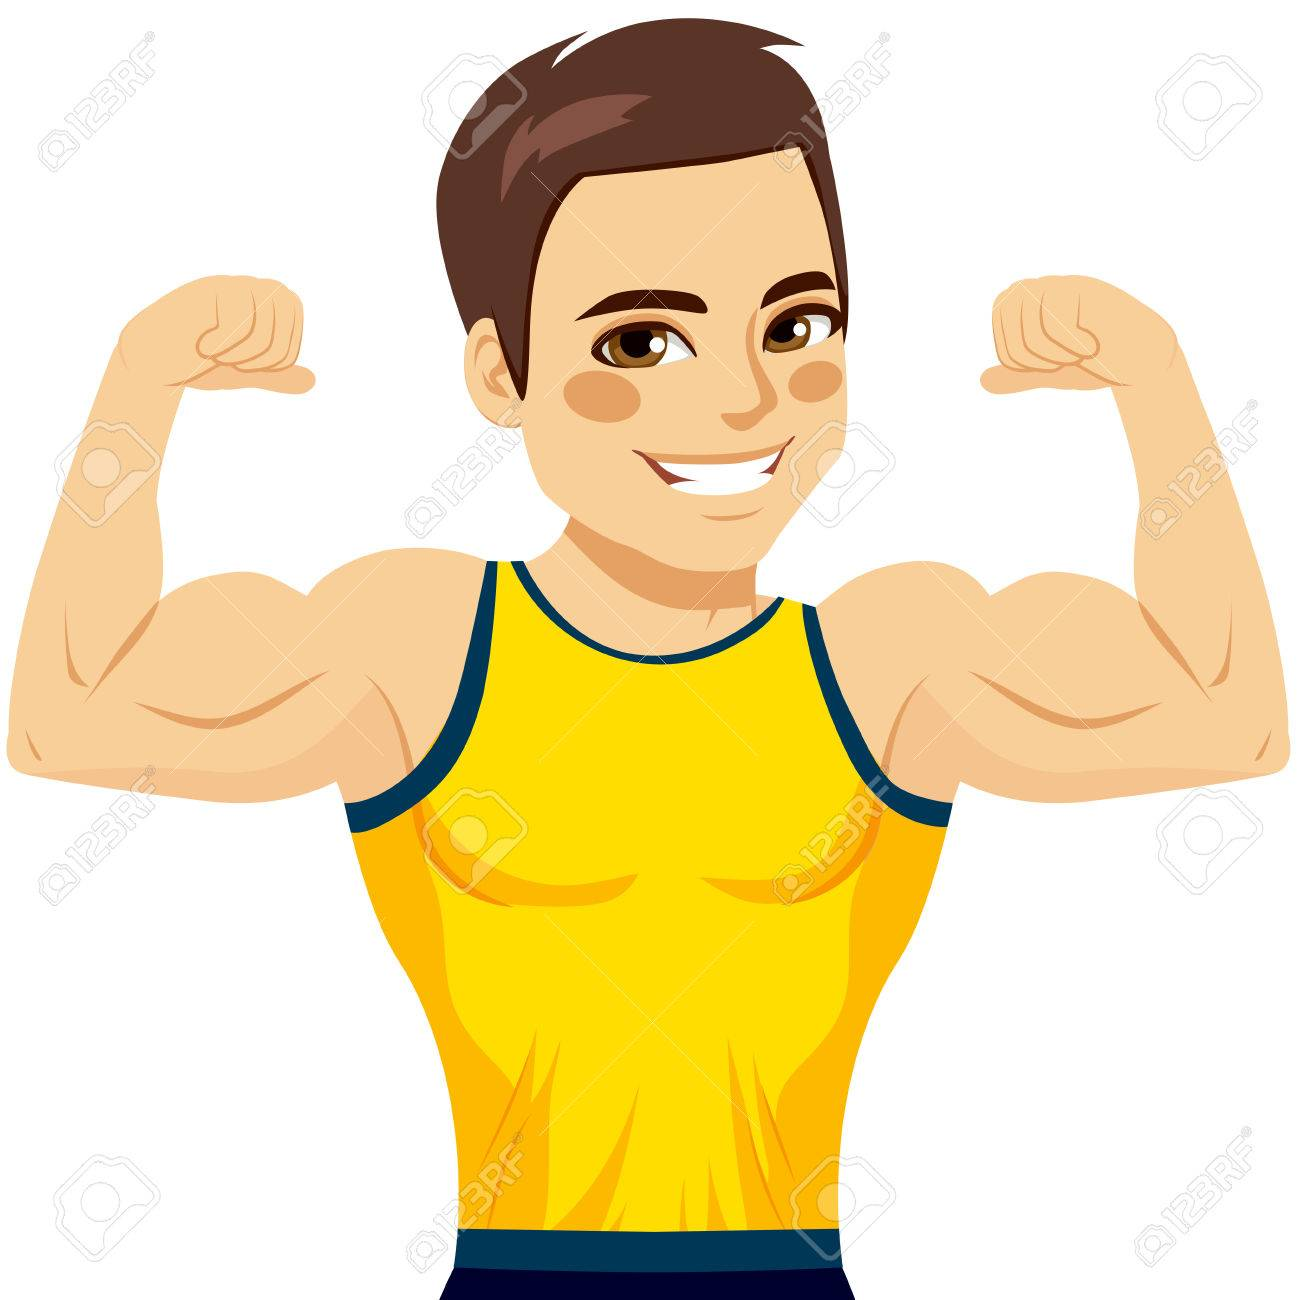 Attractive young muscular man flexing biceps and smiling happy.